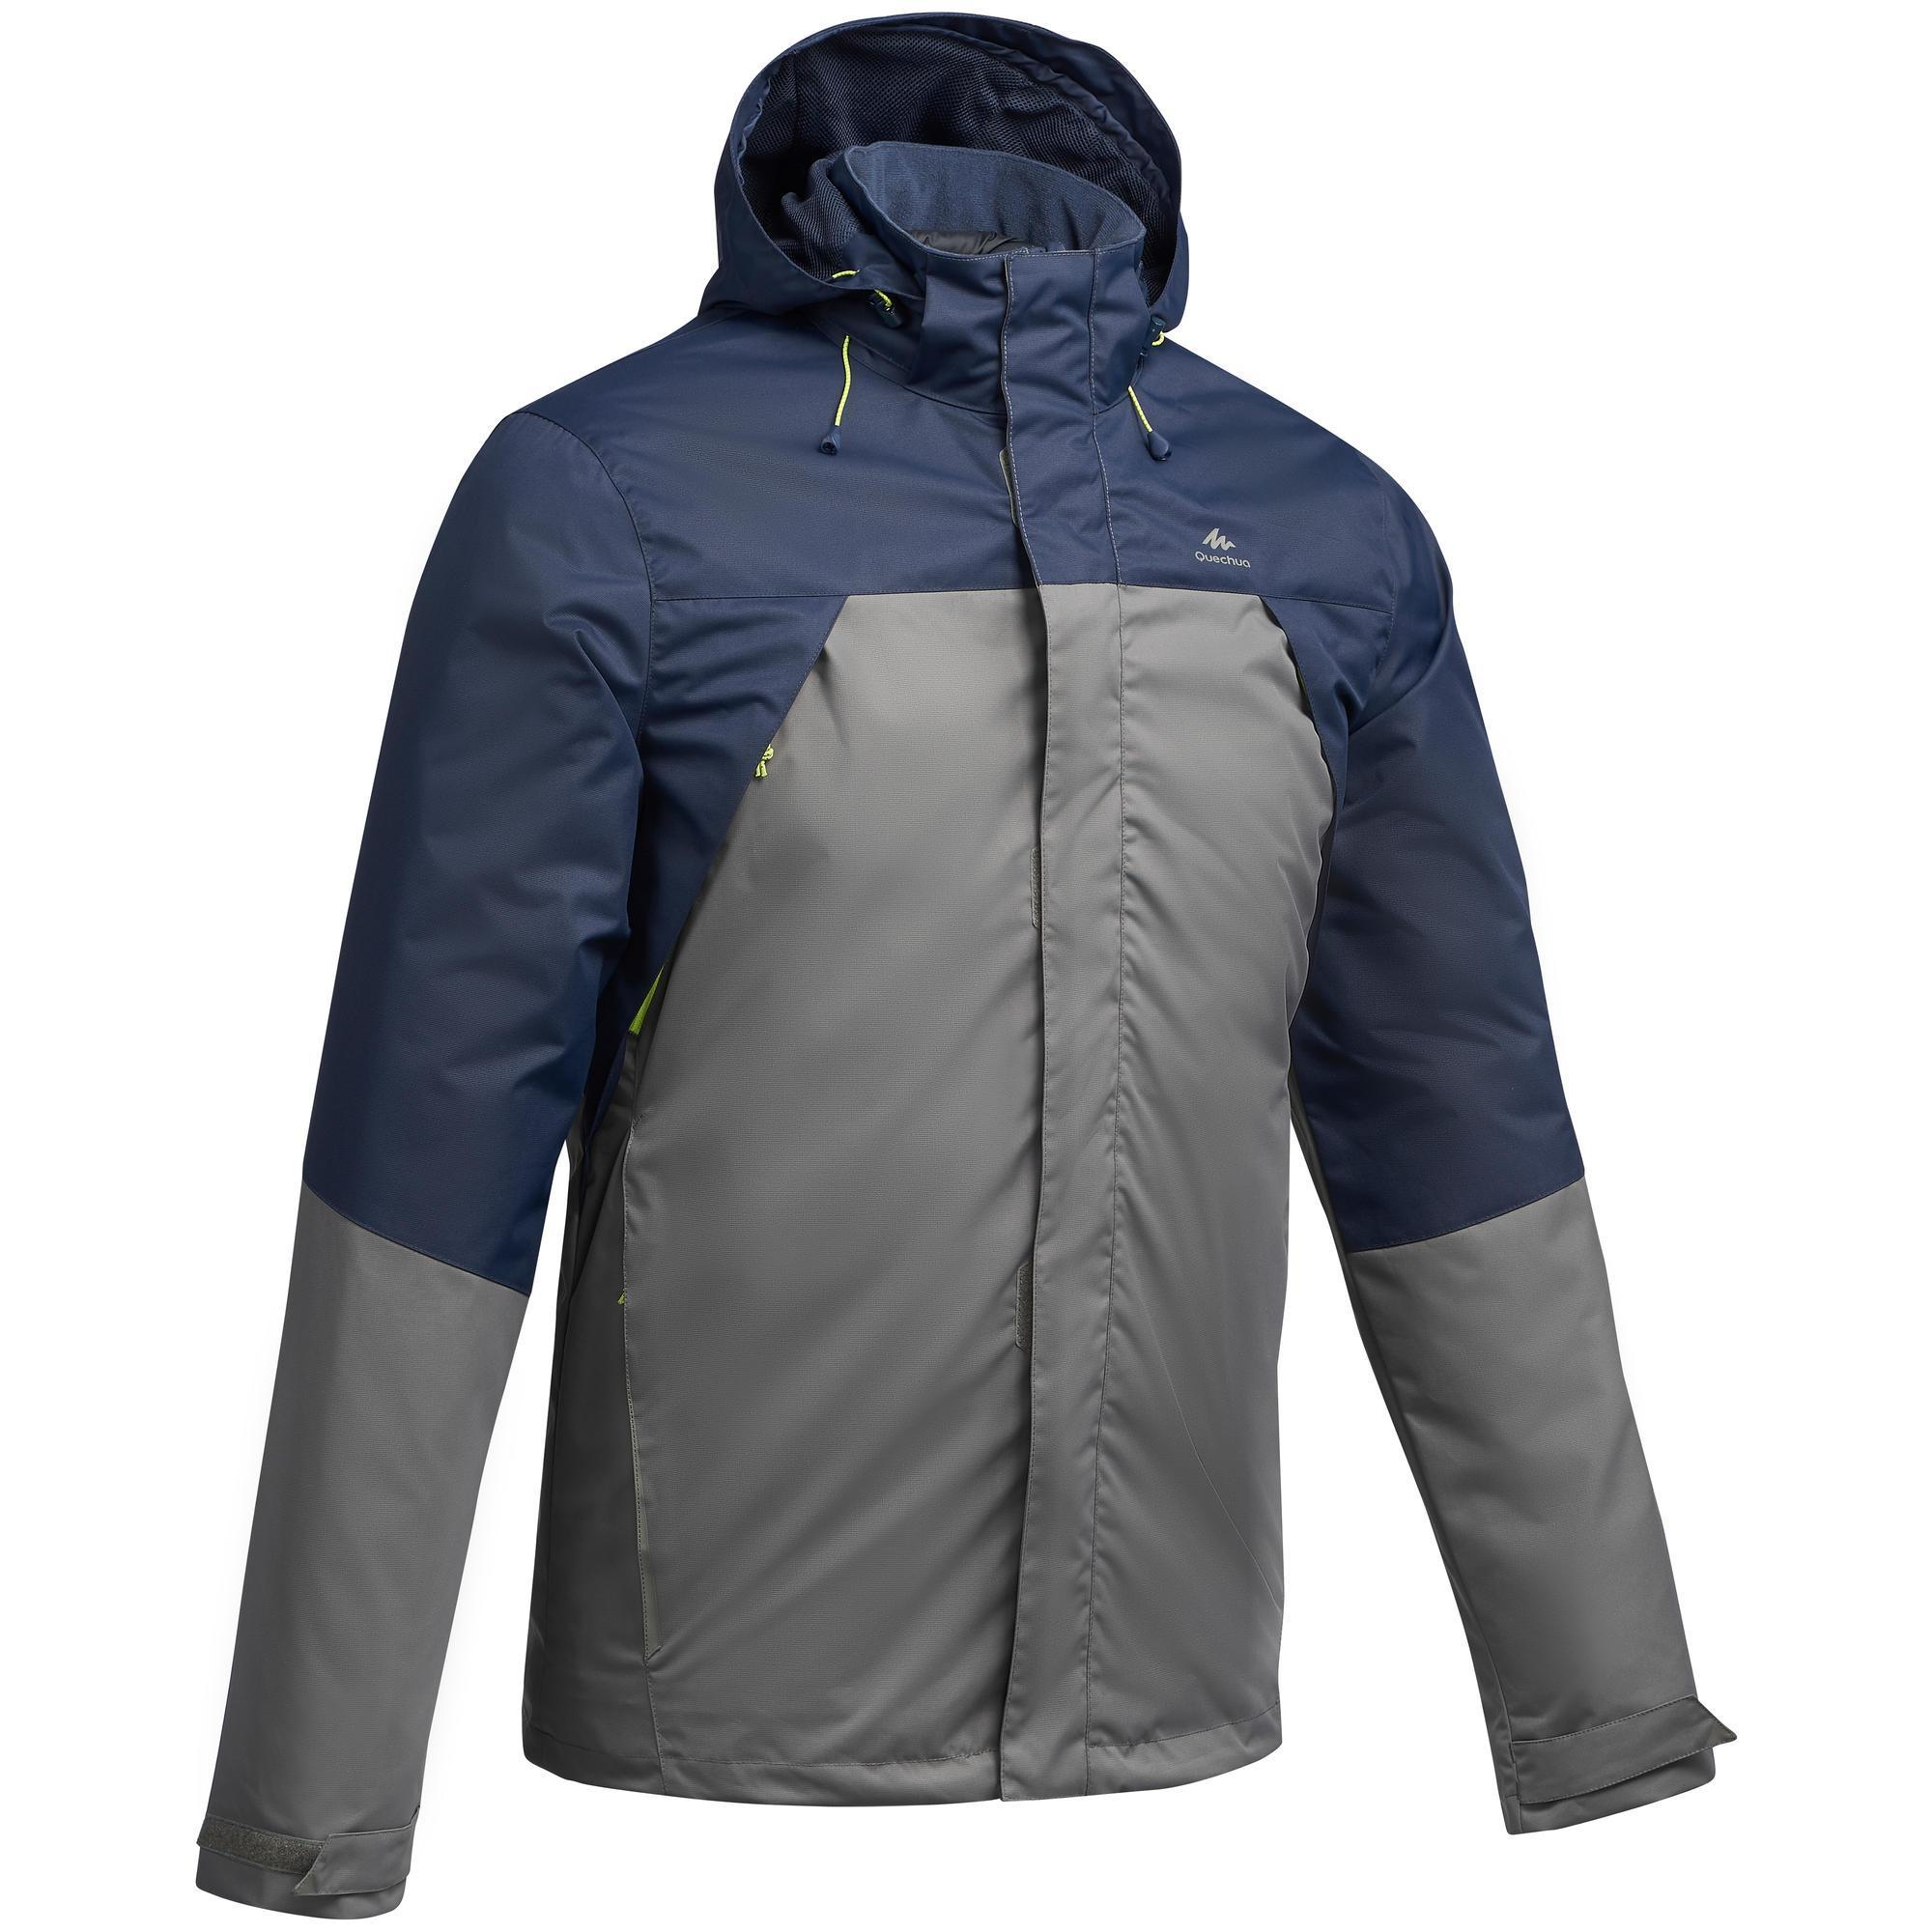 Winterjas Xs Heren.Outdoor Jas Kopen Online Of In De Winkel Decathlon Nl